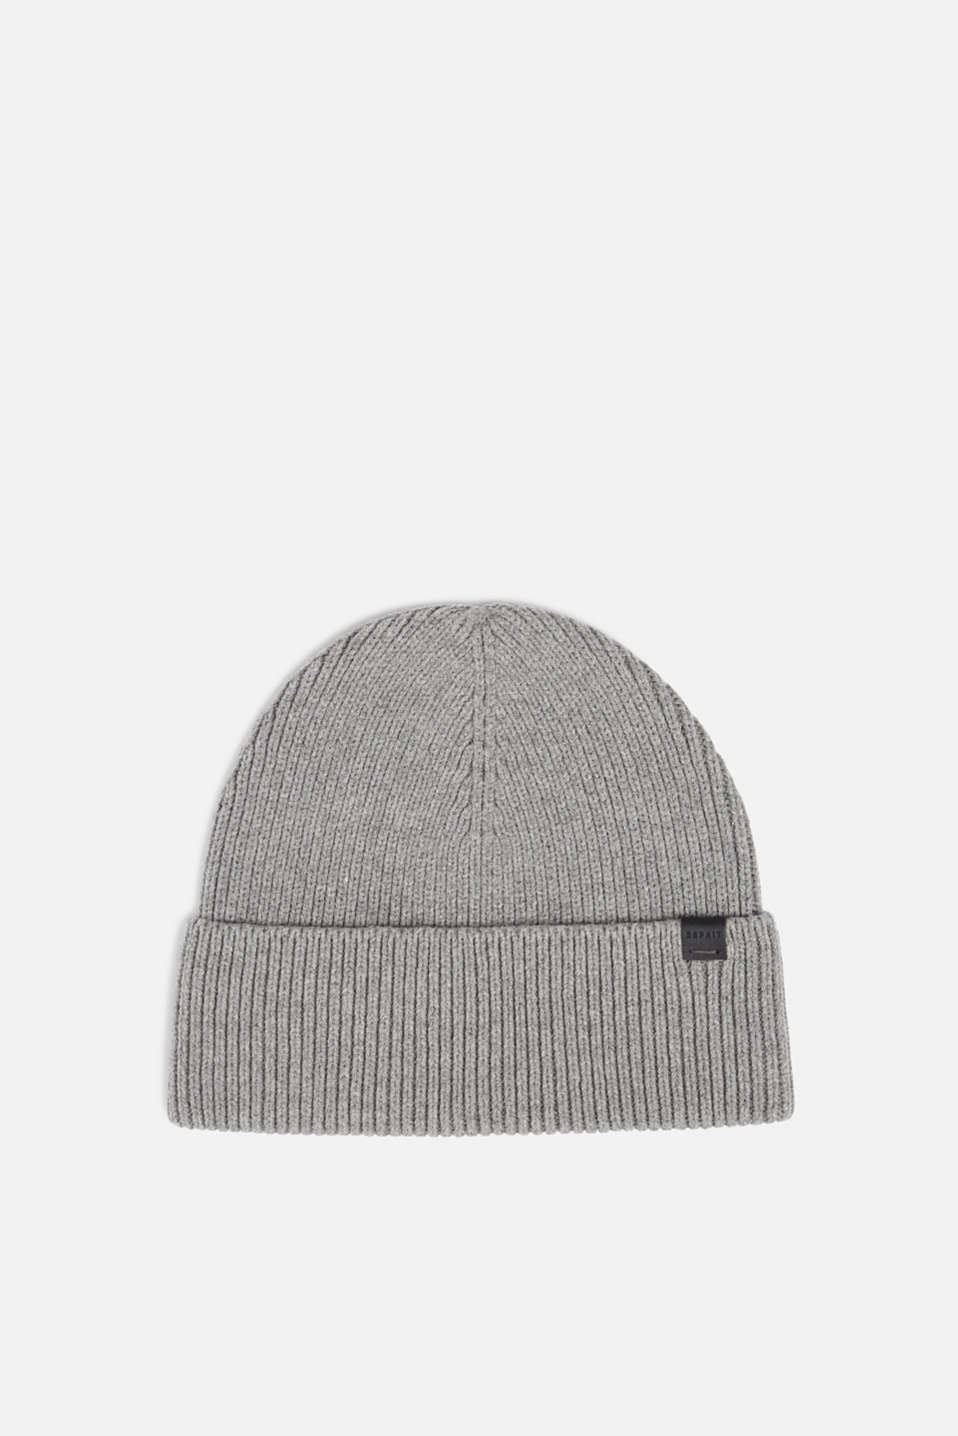 Hat with ribbed pattern, made of blended cotton, MEDIUM GREY, detail image number 0